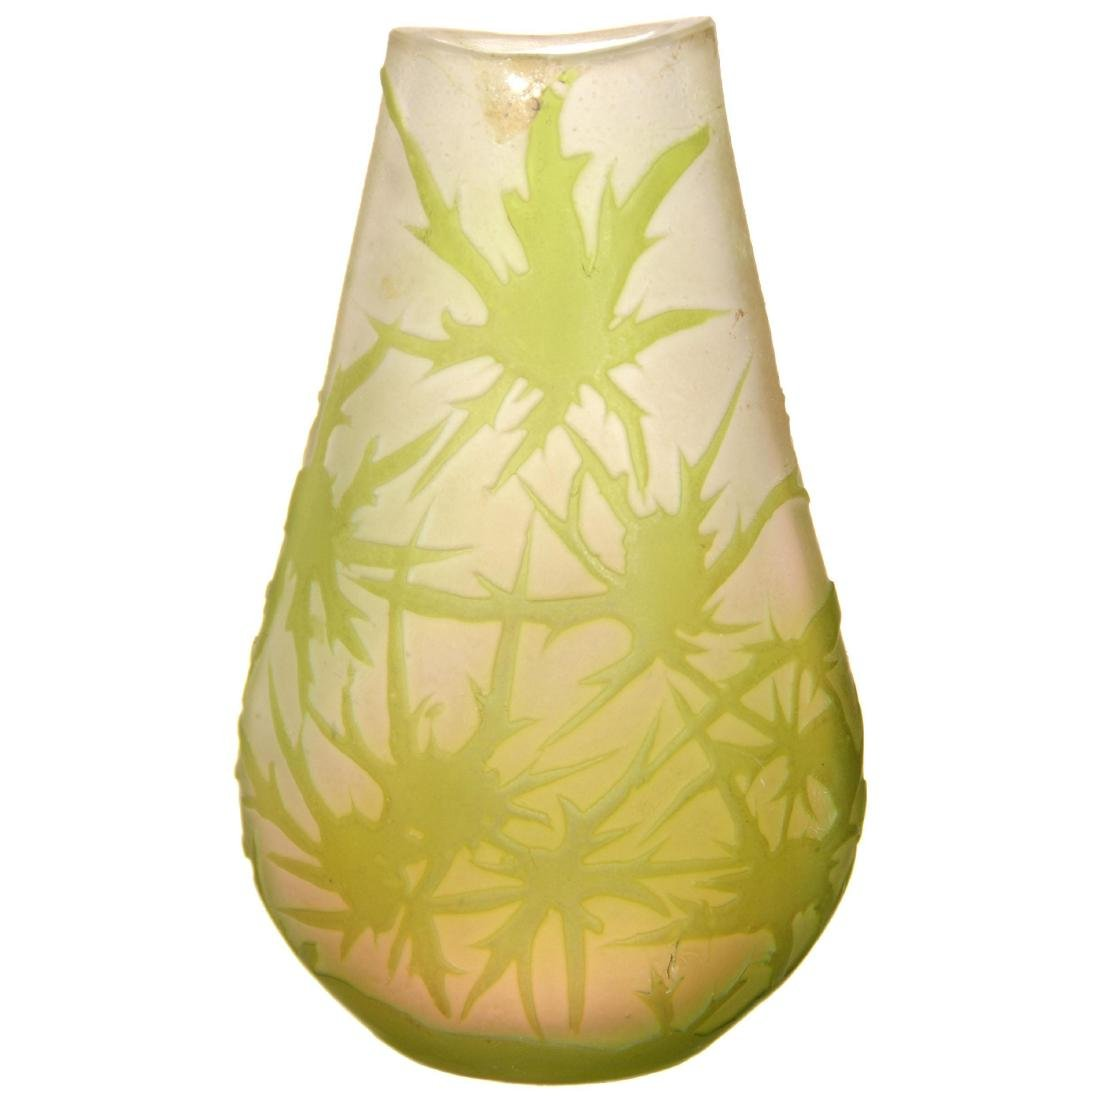 French Cameo Art Glass Vase - 2